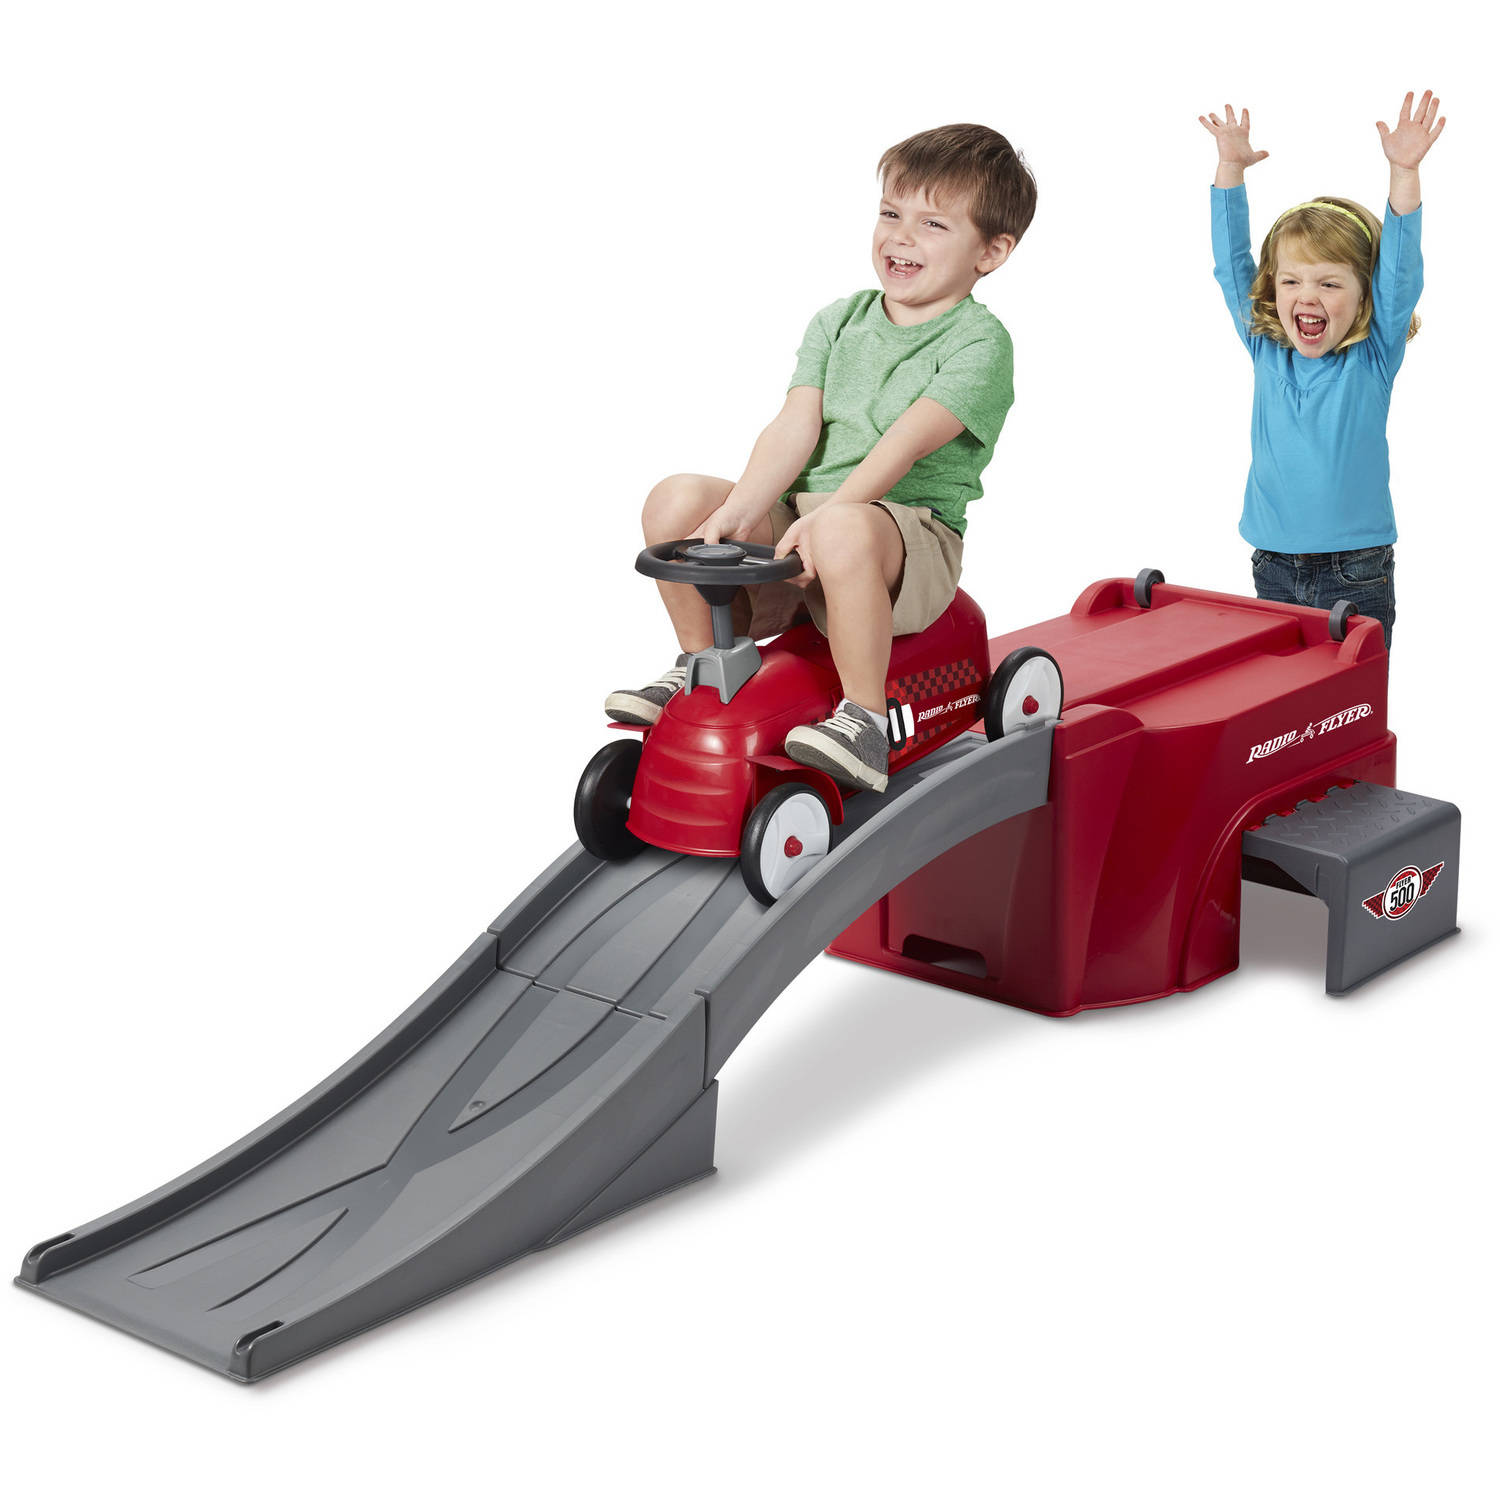 Shop for Toys, Bikes, Scooters & Ride-Ons, Kids' Bikes & Riding Toys online from armychief.ml Millions of products at discount prices - It's shopping made easy.